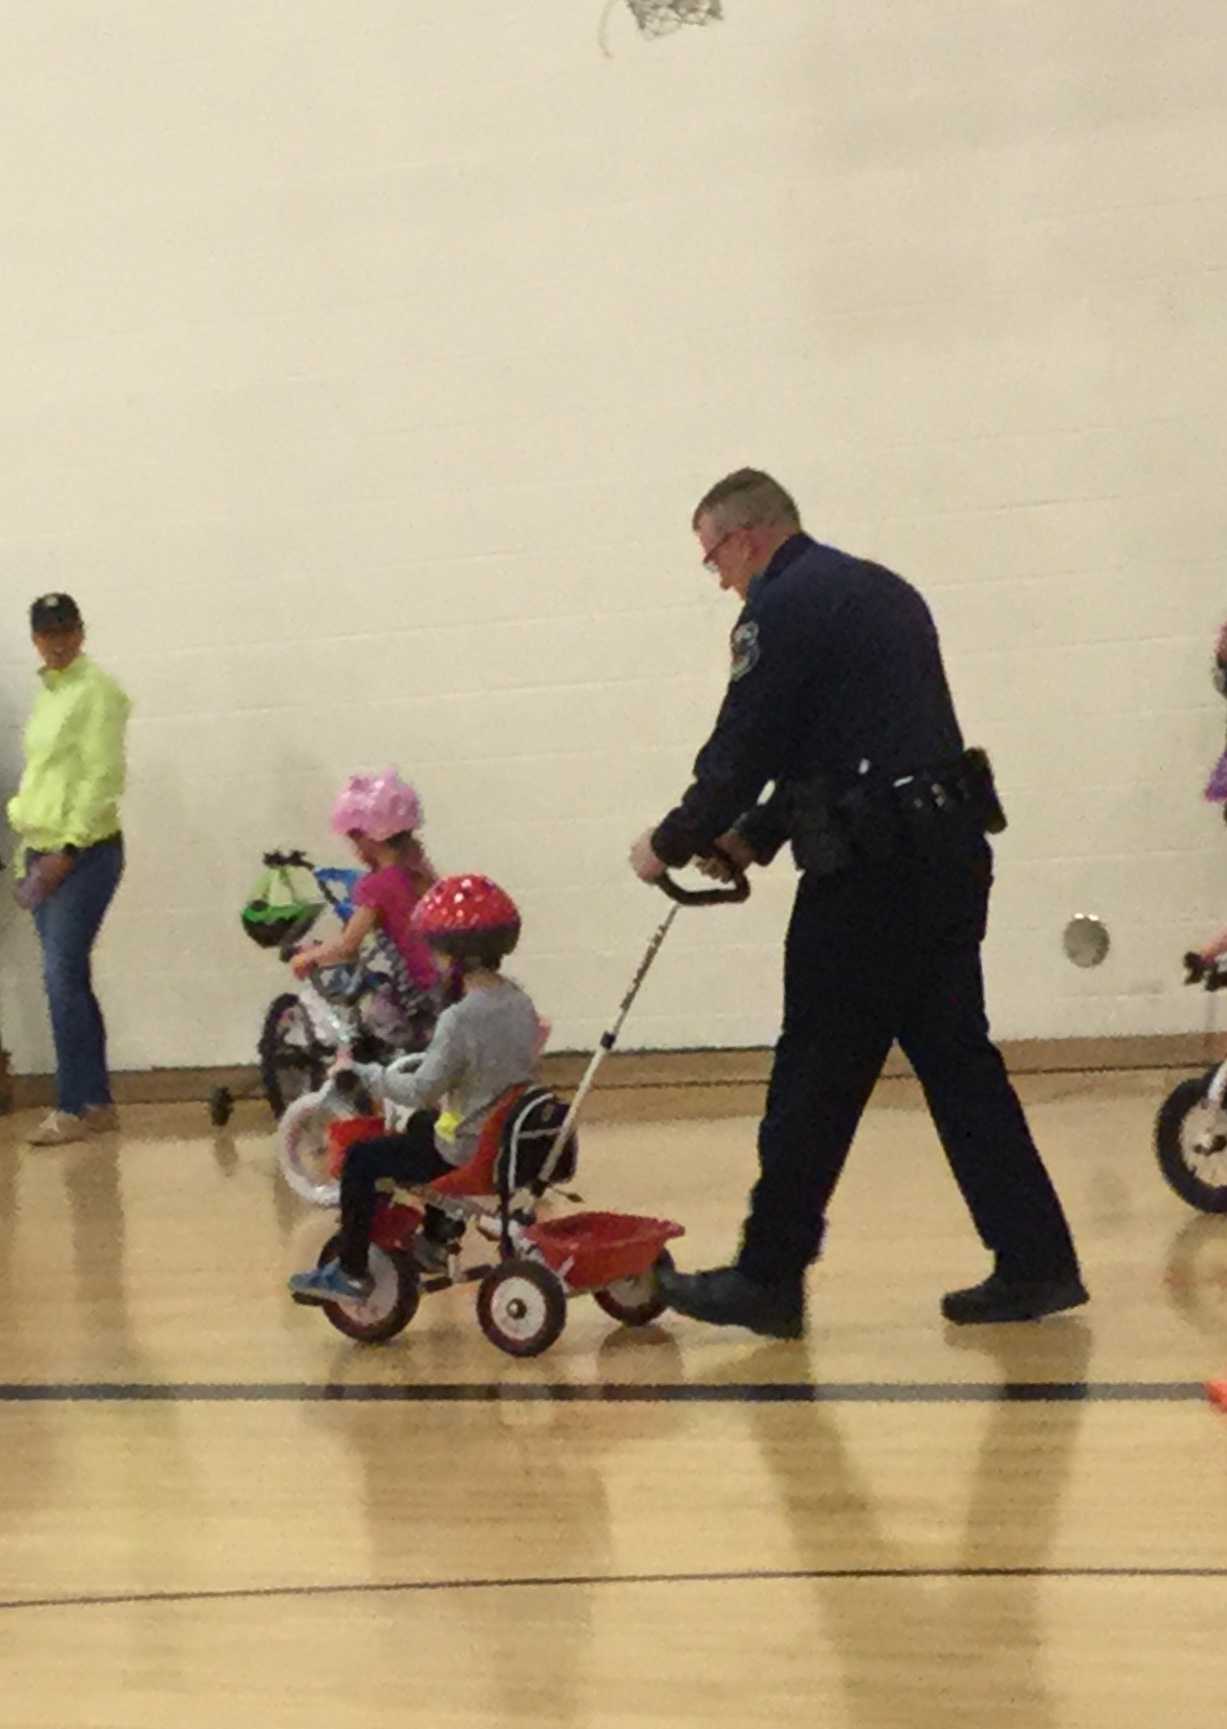 Officer Cole pushing a child on a tricycle during the bike-a-thon